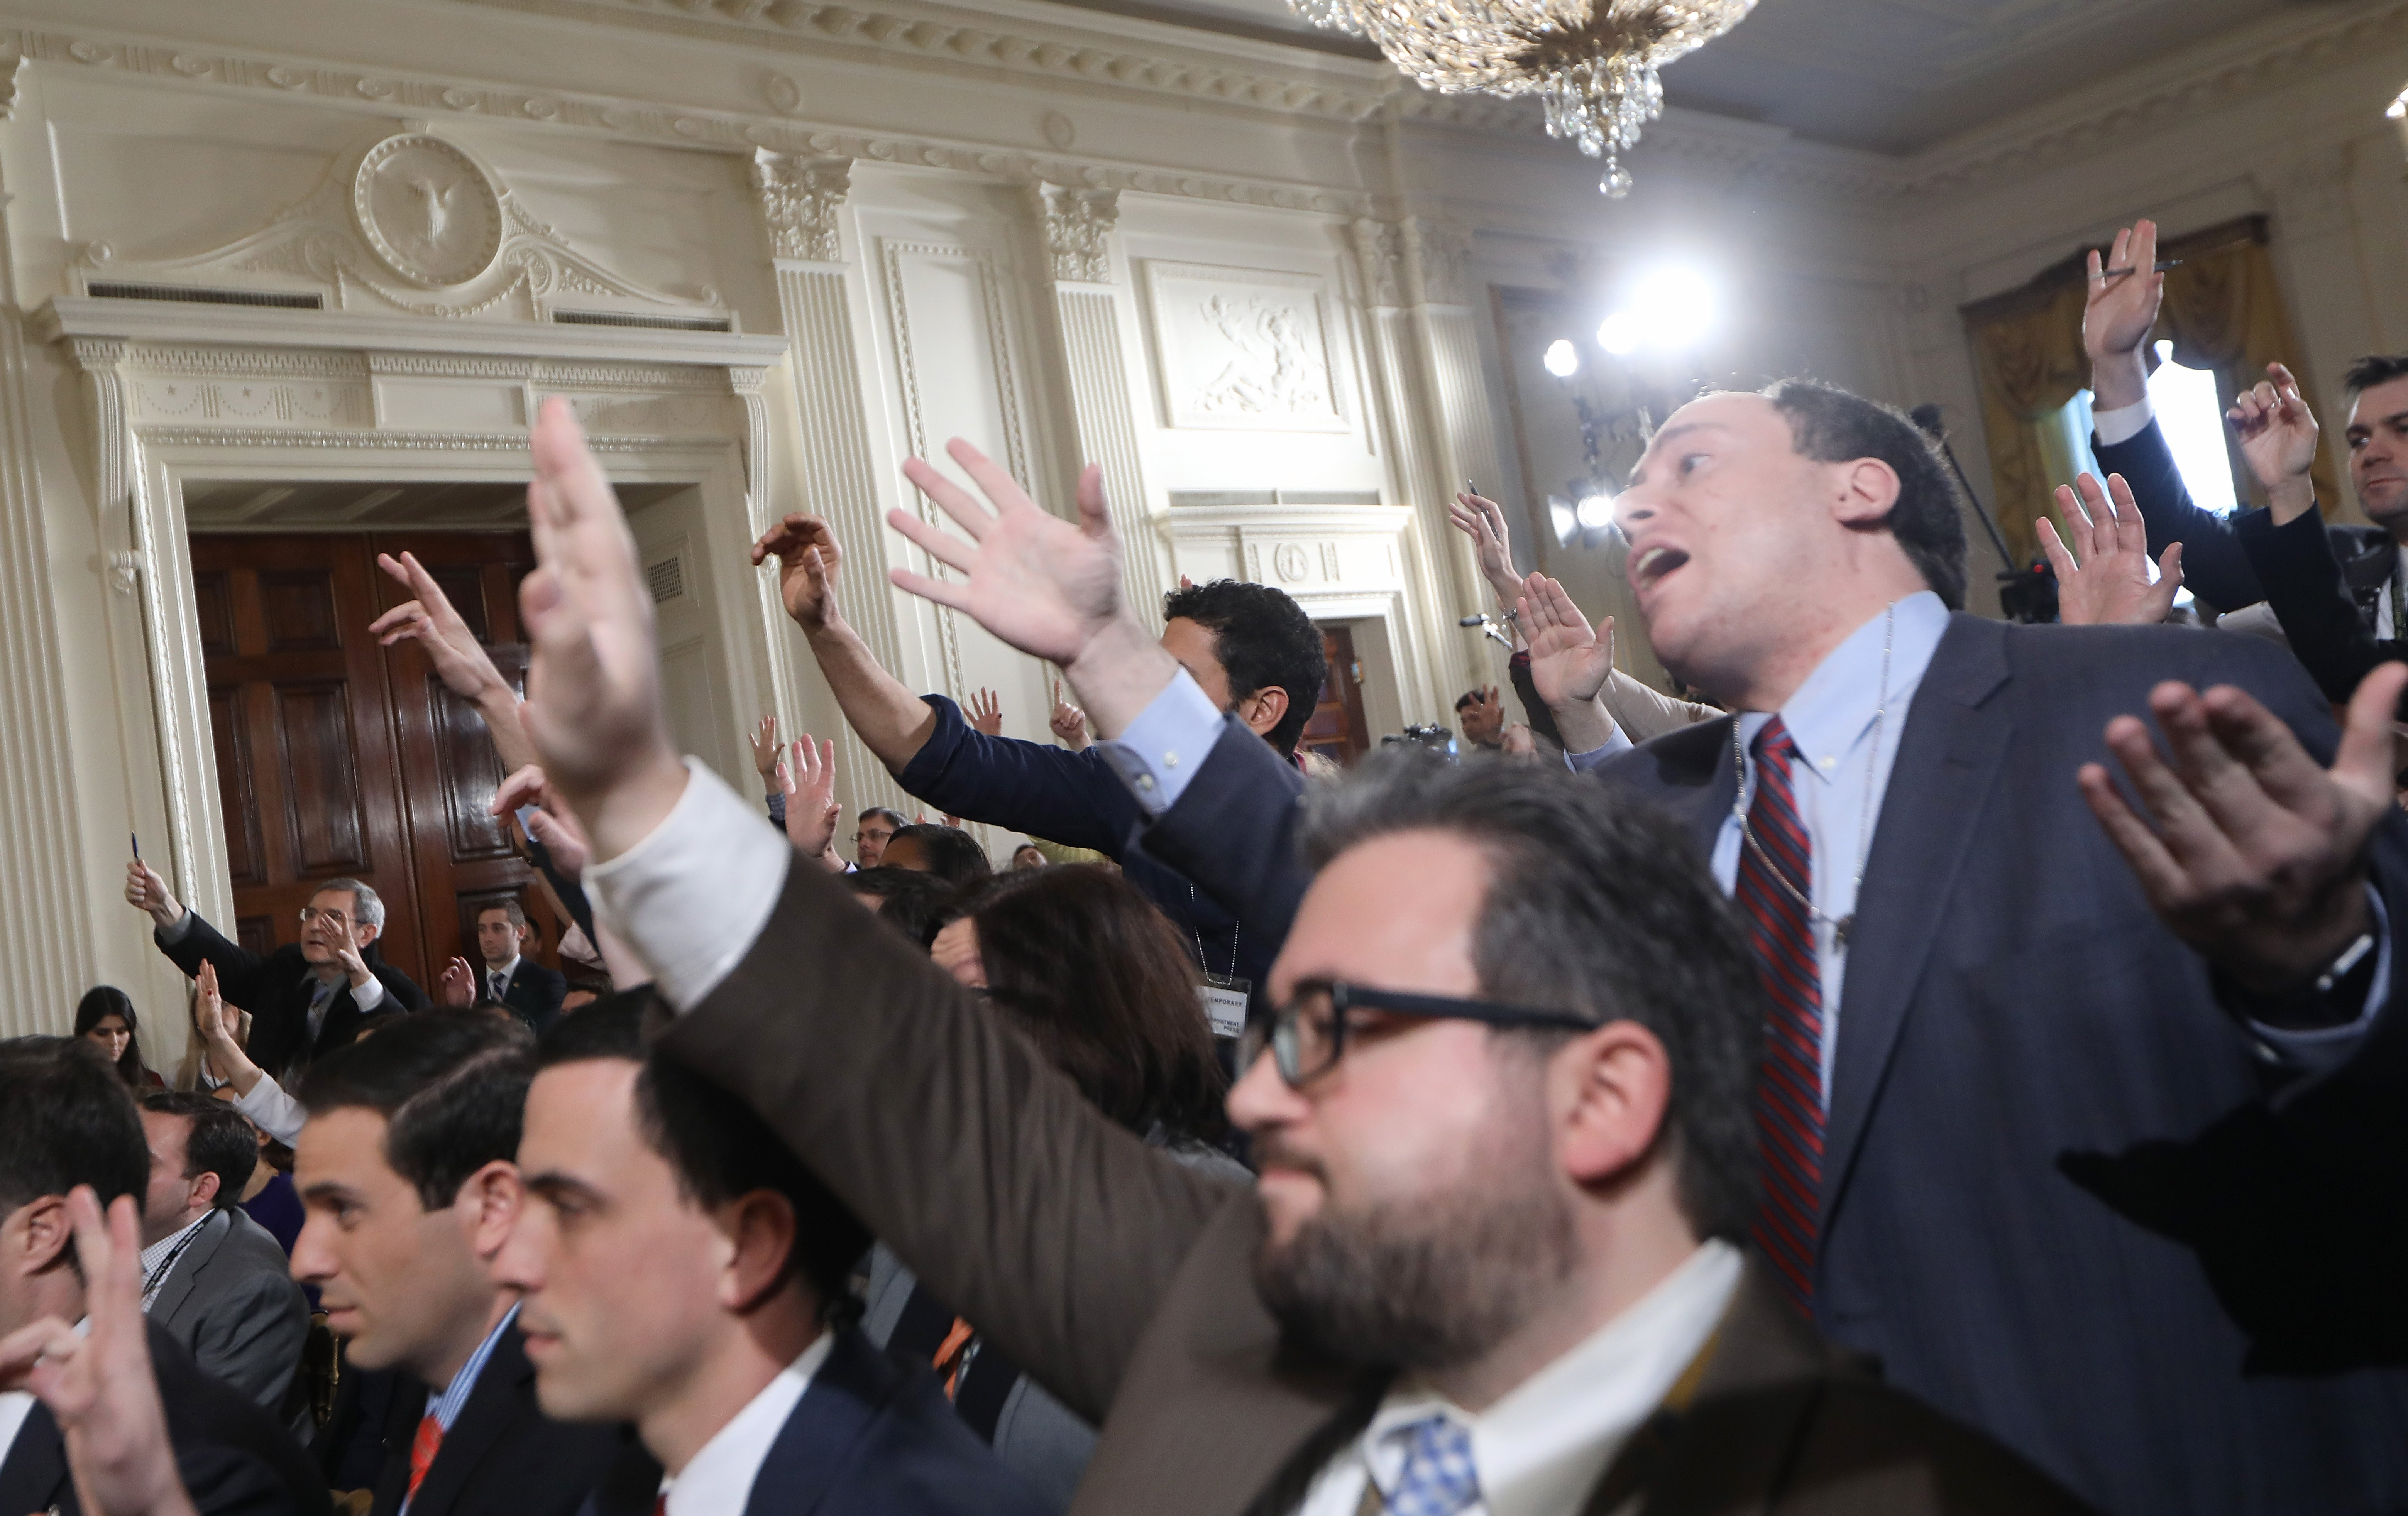 Reporters attempt to pose questions to President Donald Trump during a news conference announcing Alexander Acosta as the new Labor Secretary nominee in the East Room at the White House in Washington, on Feb. 16, 2017.